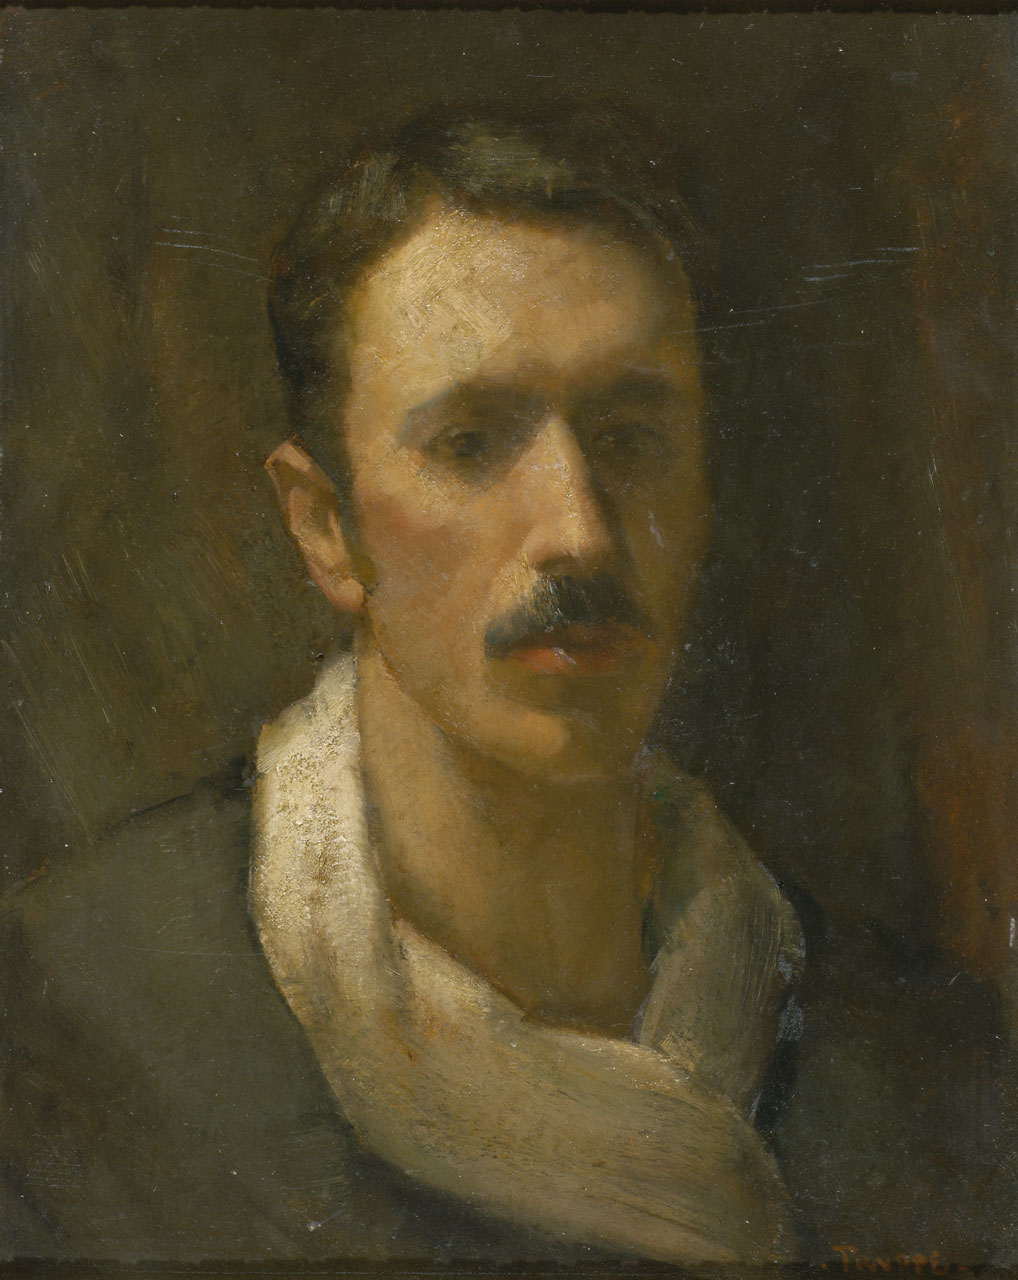 Karl Truppe (1887-1959), self-portrait, 1914, oil on cardboard, 52x40cm, signed and dated